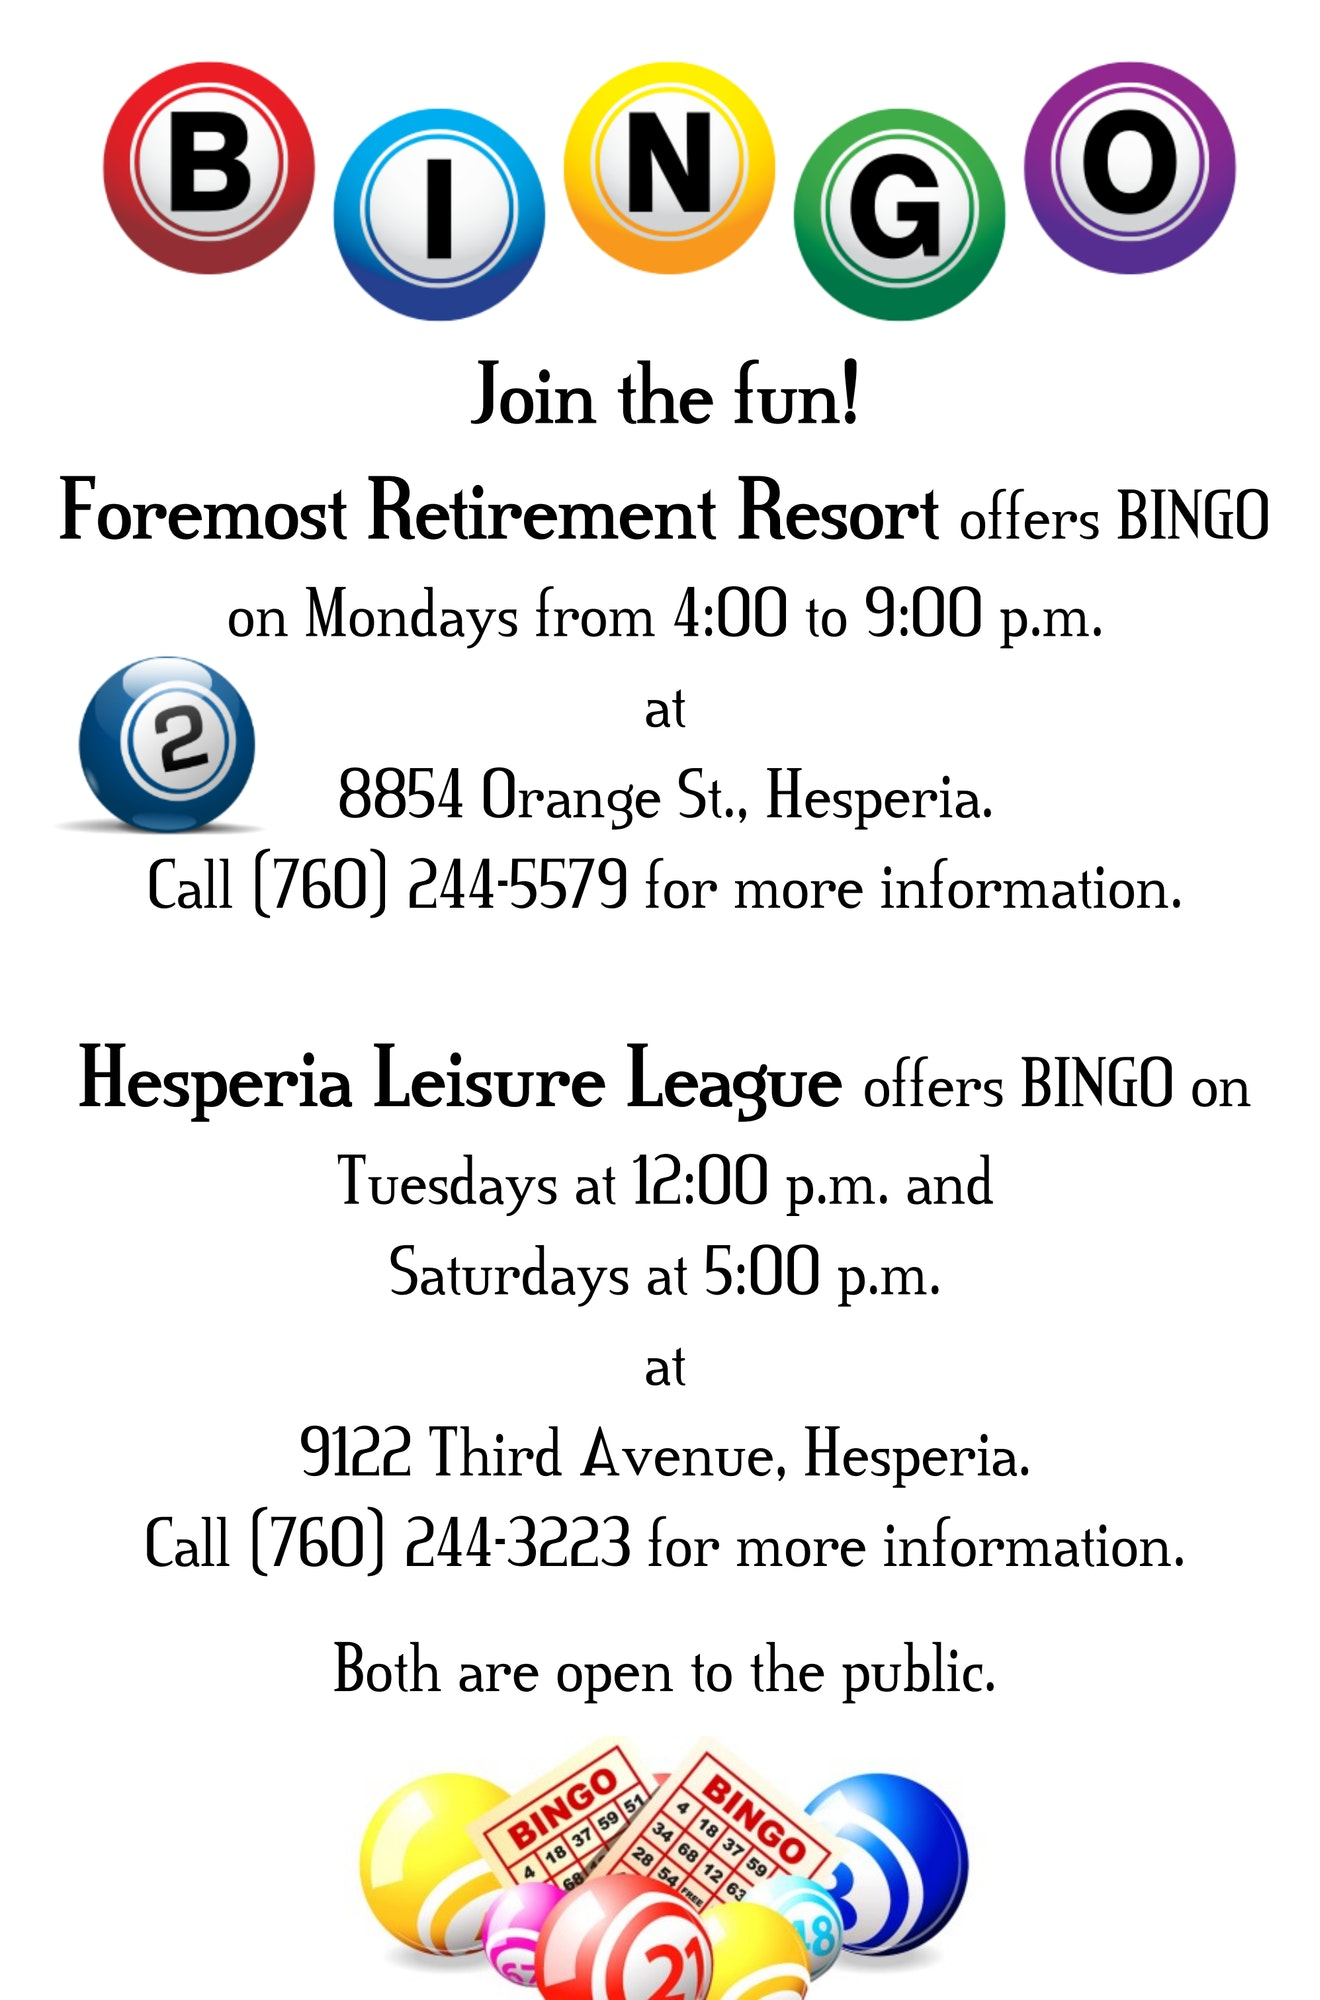 Bingo Flyer; Bingo Join the Fun! Foremost Retirement Resort offers BINGO n Mondays from 4:00 to 9:00 pm at 8854 Orange Street, Hesperia. Call (760) 244-5579 for more information. Hesperia Leisure League offers BINGO on Tuesdays at 12:00 pm and Saturdays at 5:00 pm at 9122 Third Avenue, Hesperia. Call (760) 244-3223 for more information. Both are open to the public.